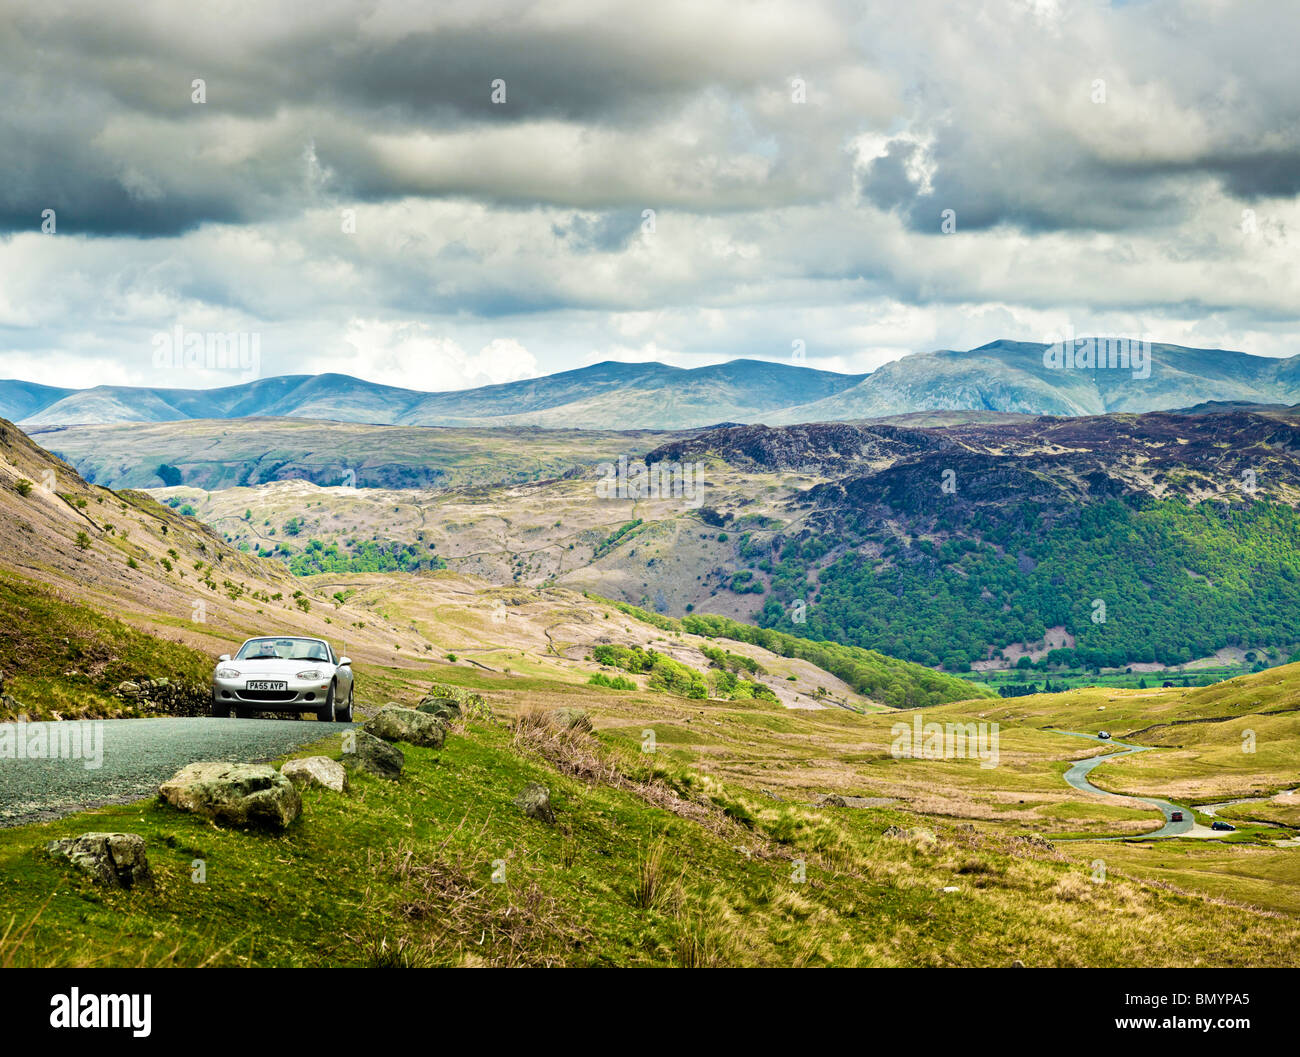 Sports car driving on Honister Pass in the English Lake District National Park, Cumbria, England, UK - Stock Image